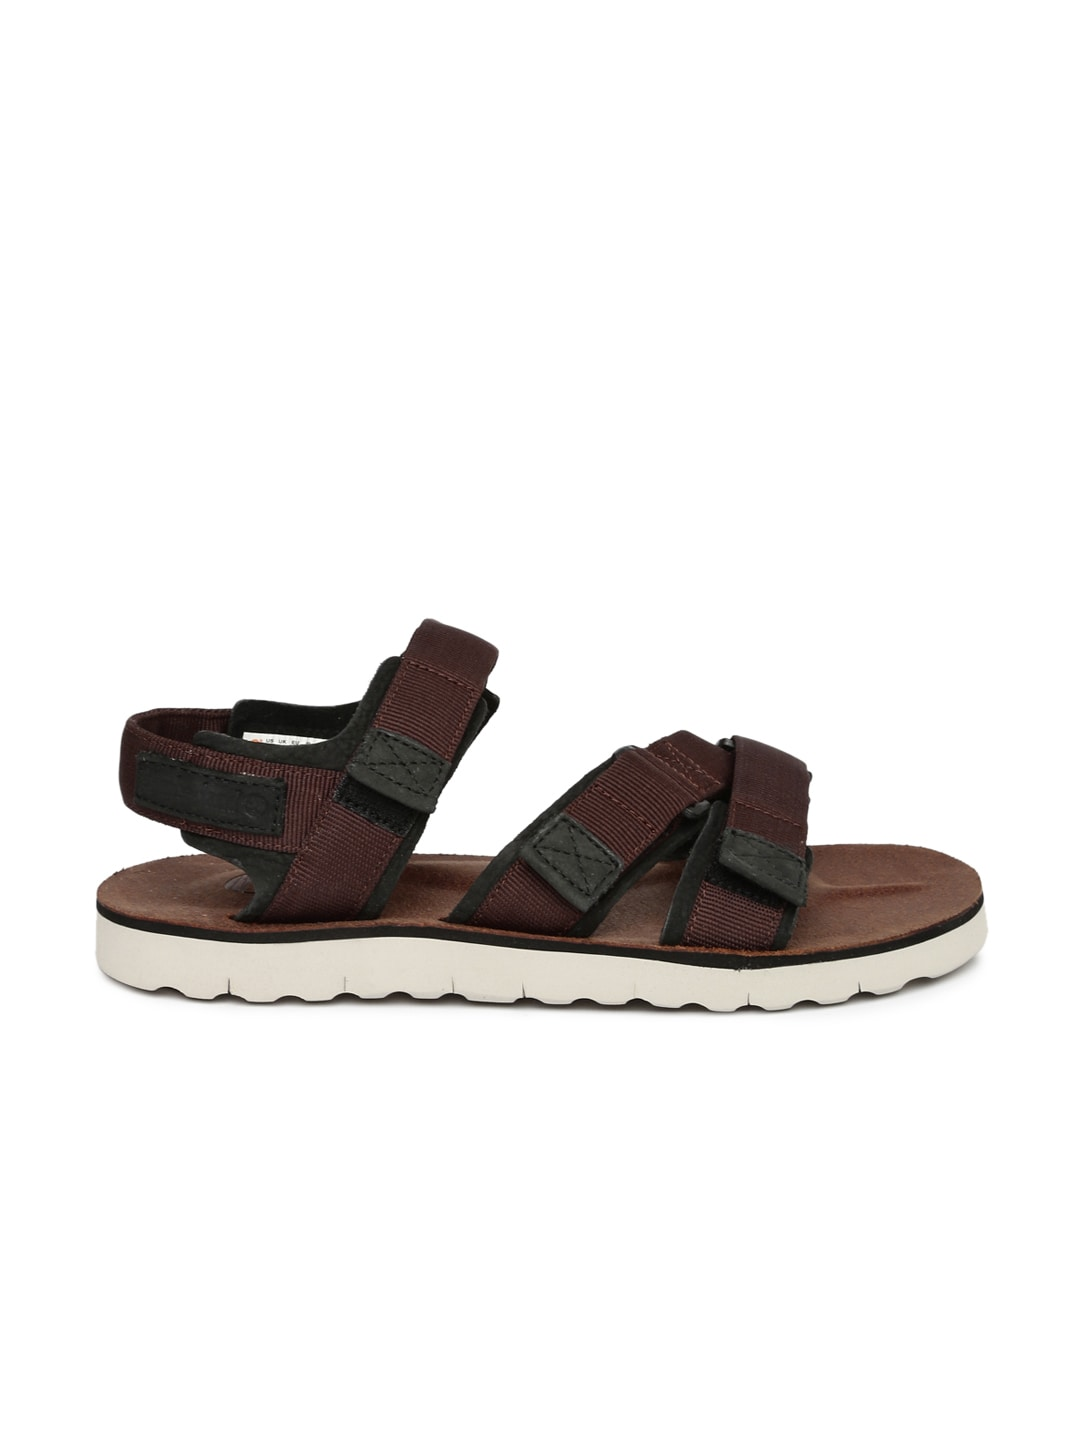 89eac5413898 Timberland Sandals - Buy Timberland Sandals Online in India